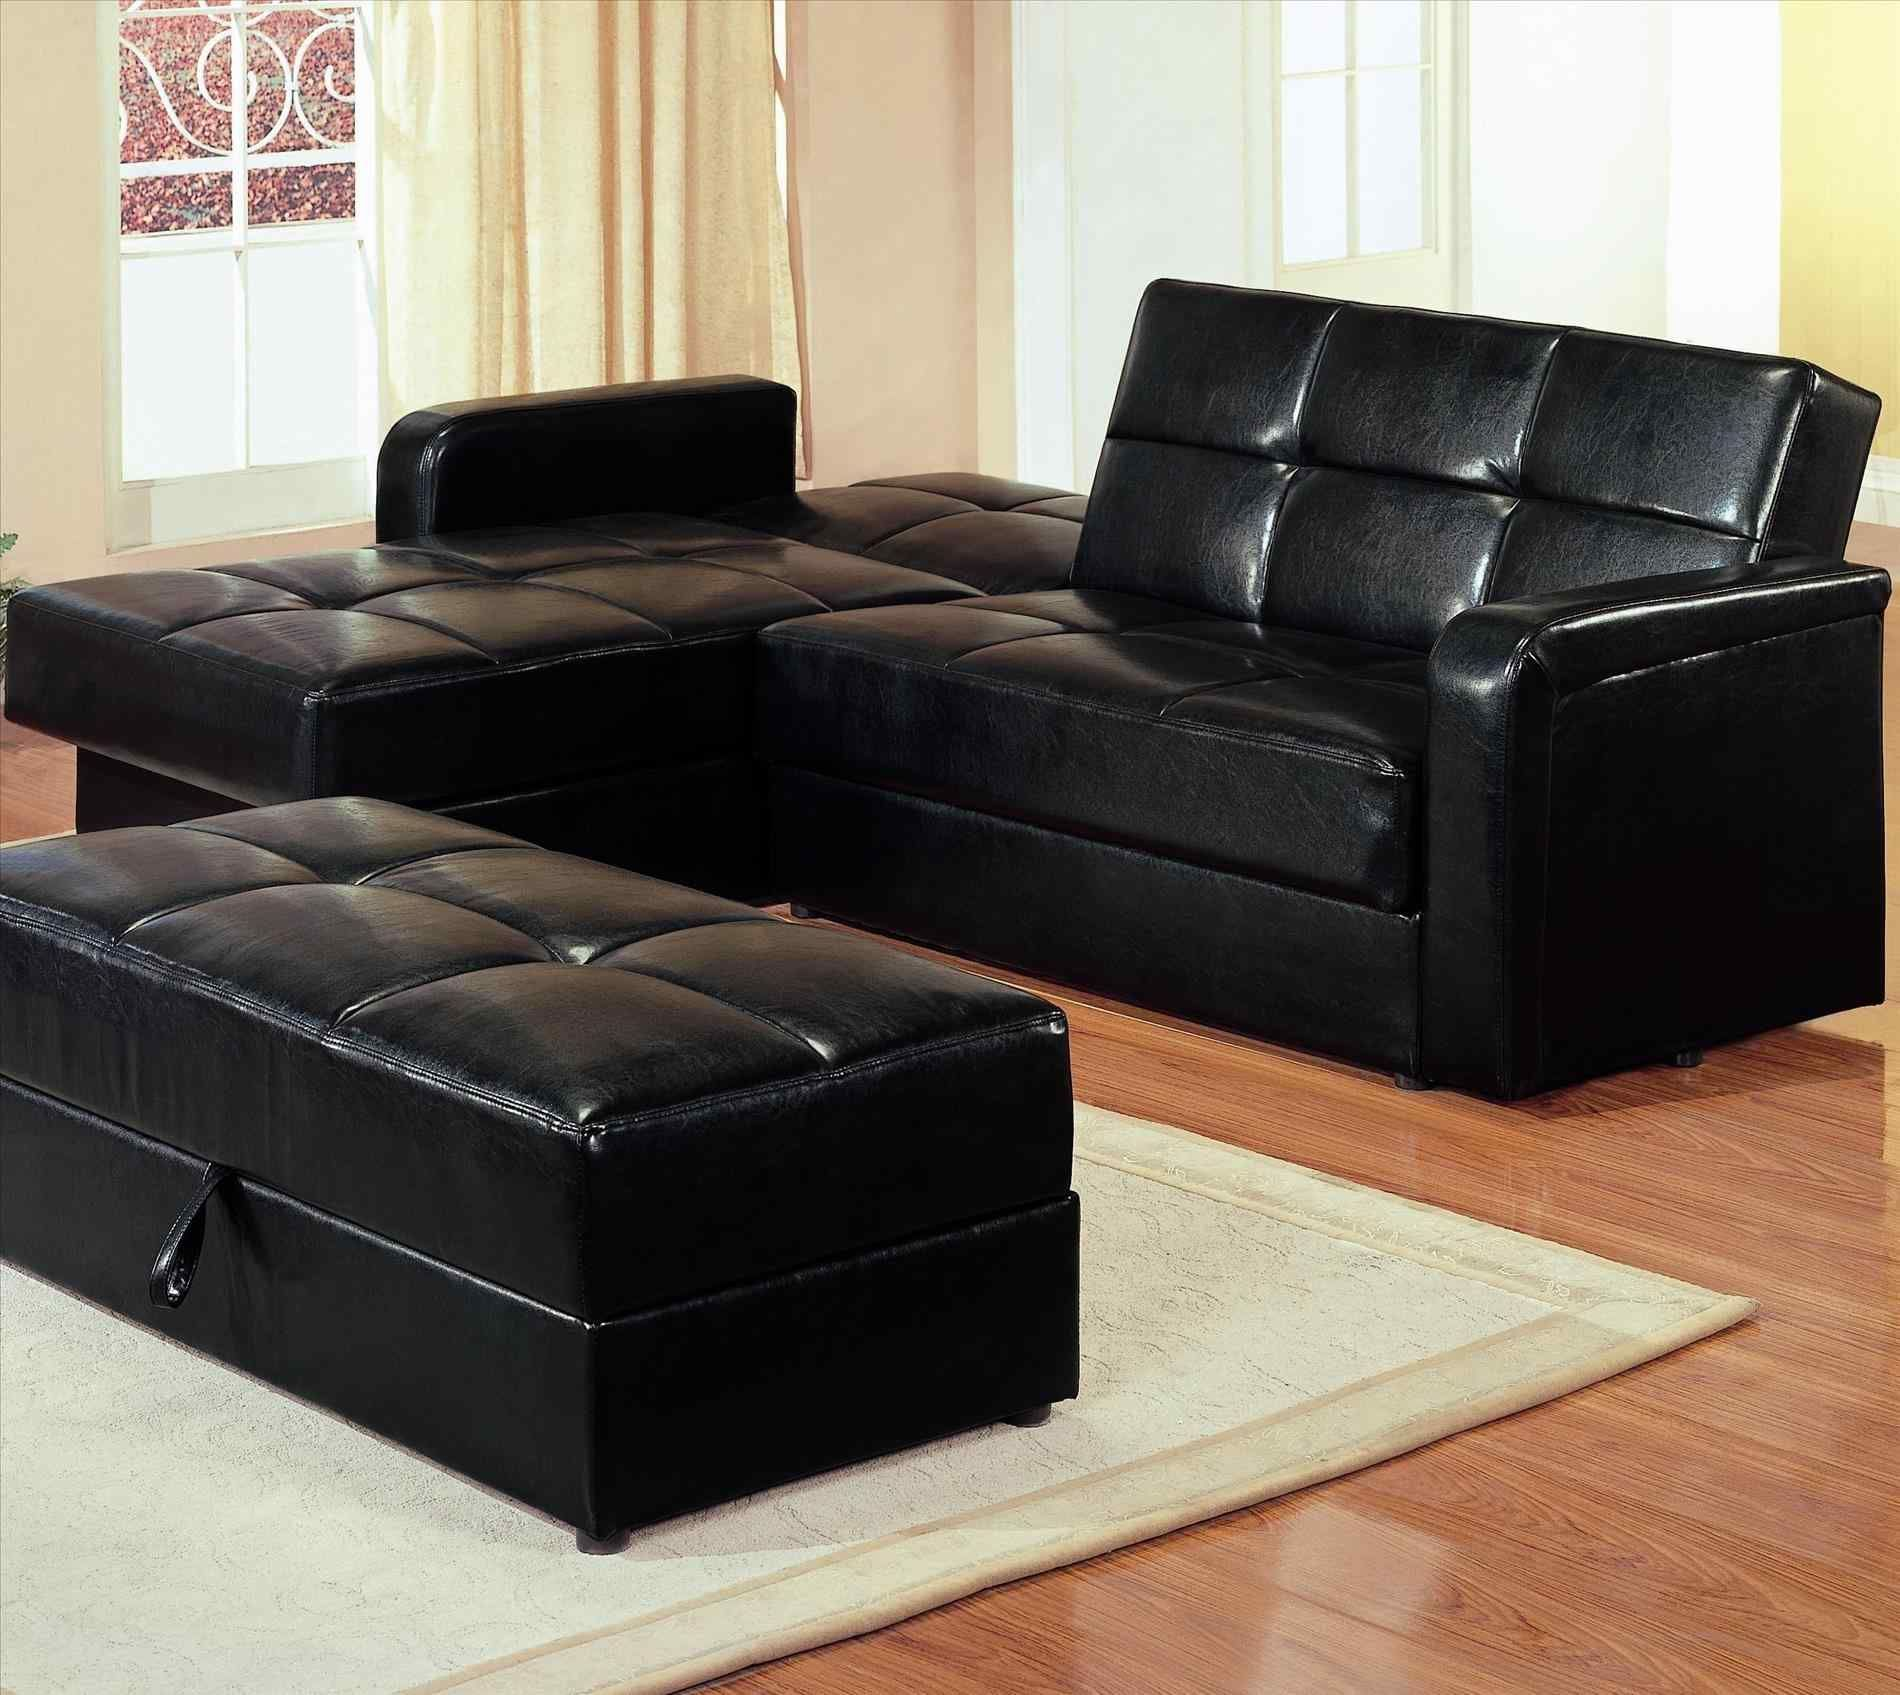 Nyc Sofa Maintenance Style Value Microfiber Furniplanetcom Fabric Bliss Left At Sectional